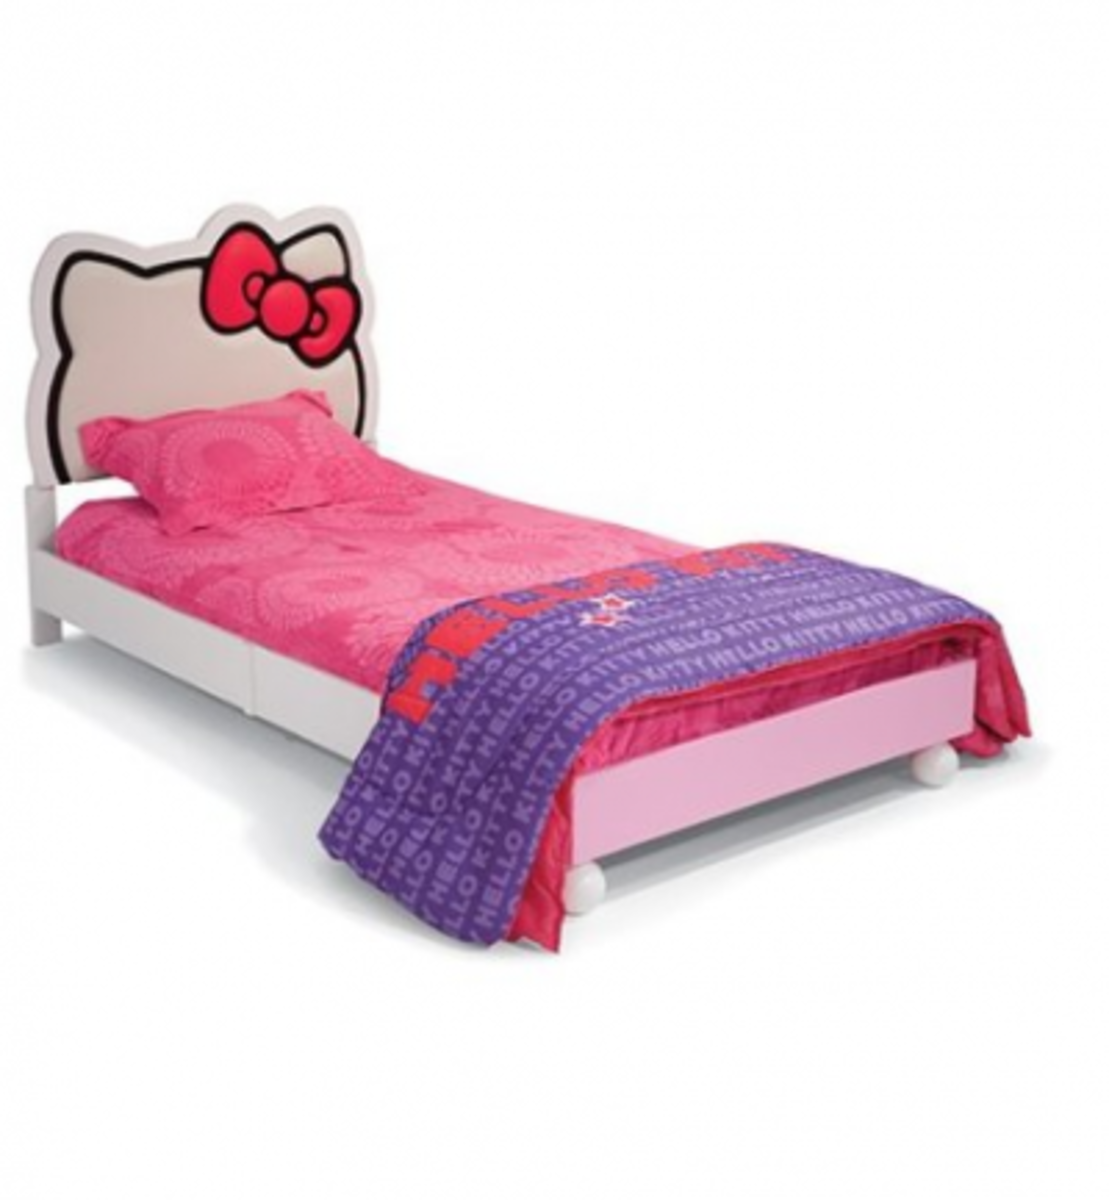 low priced 1d7ad dc9e3 Kitty Bed: Queen Size Hello Kitty Bed Frame